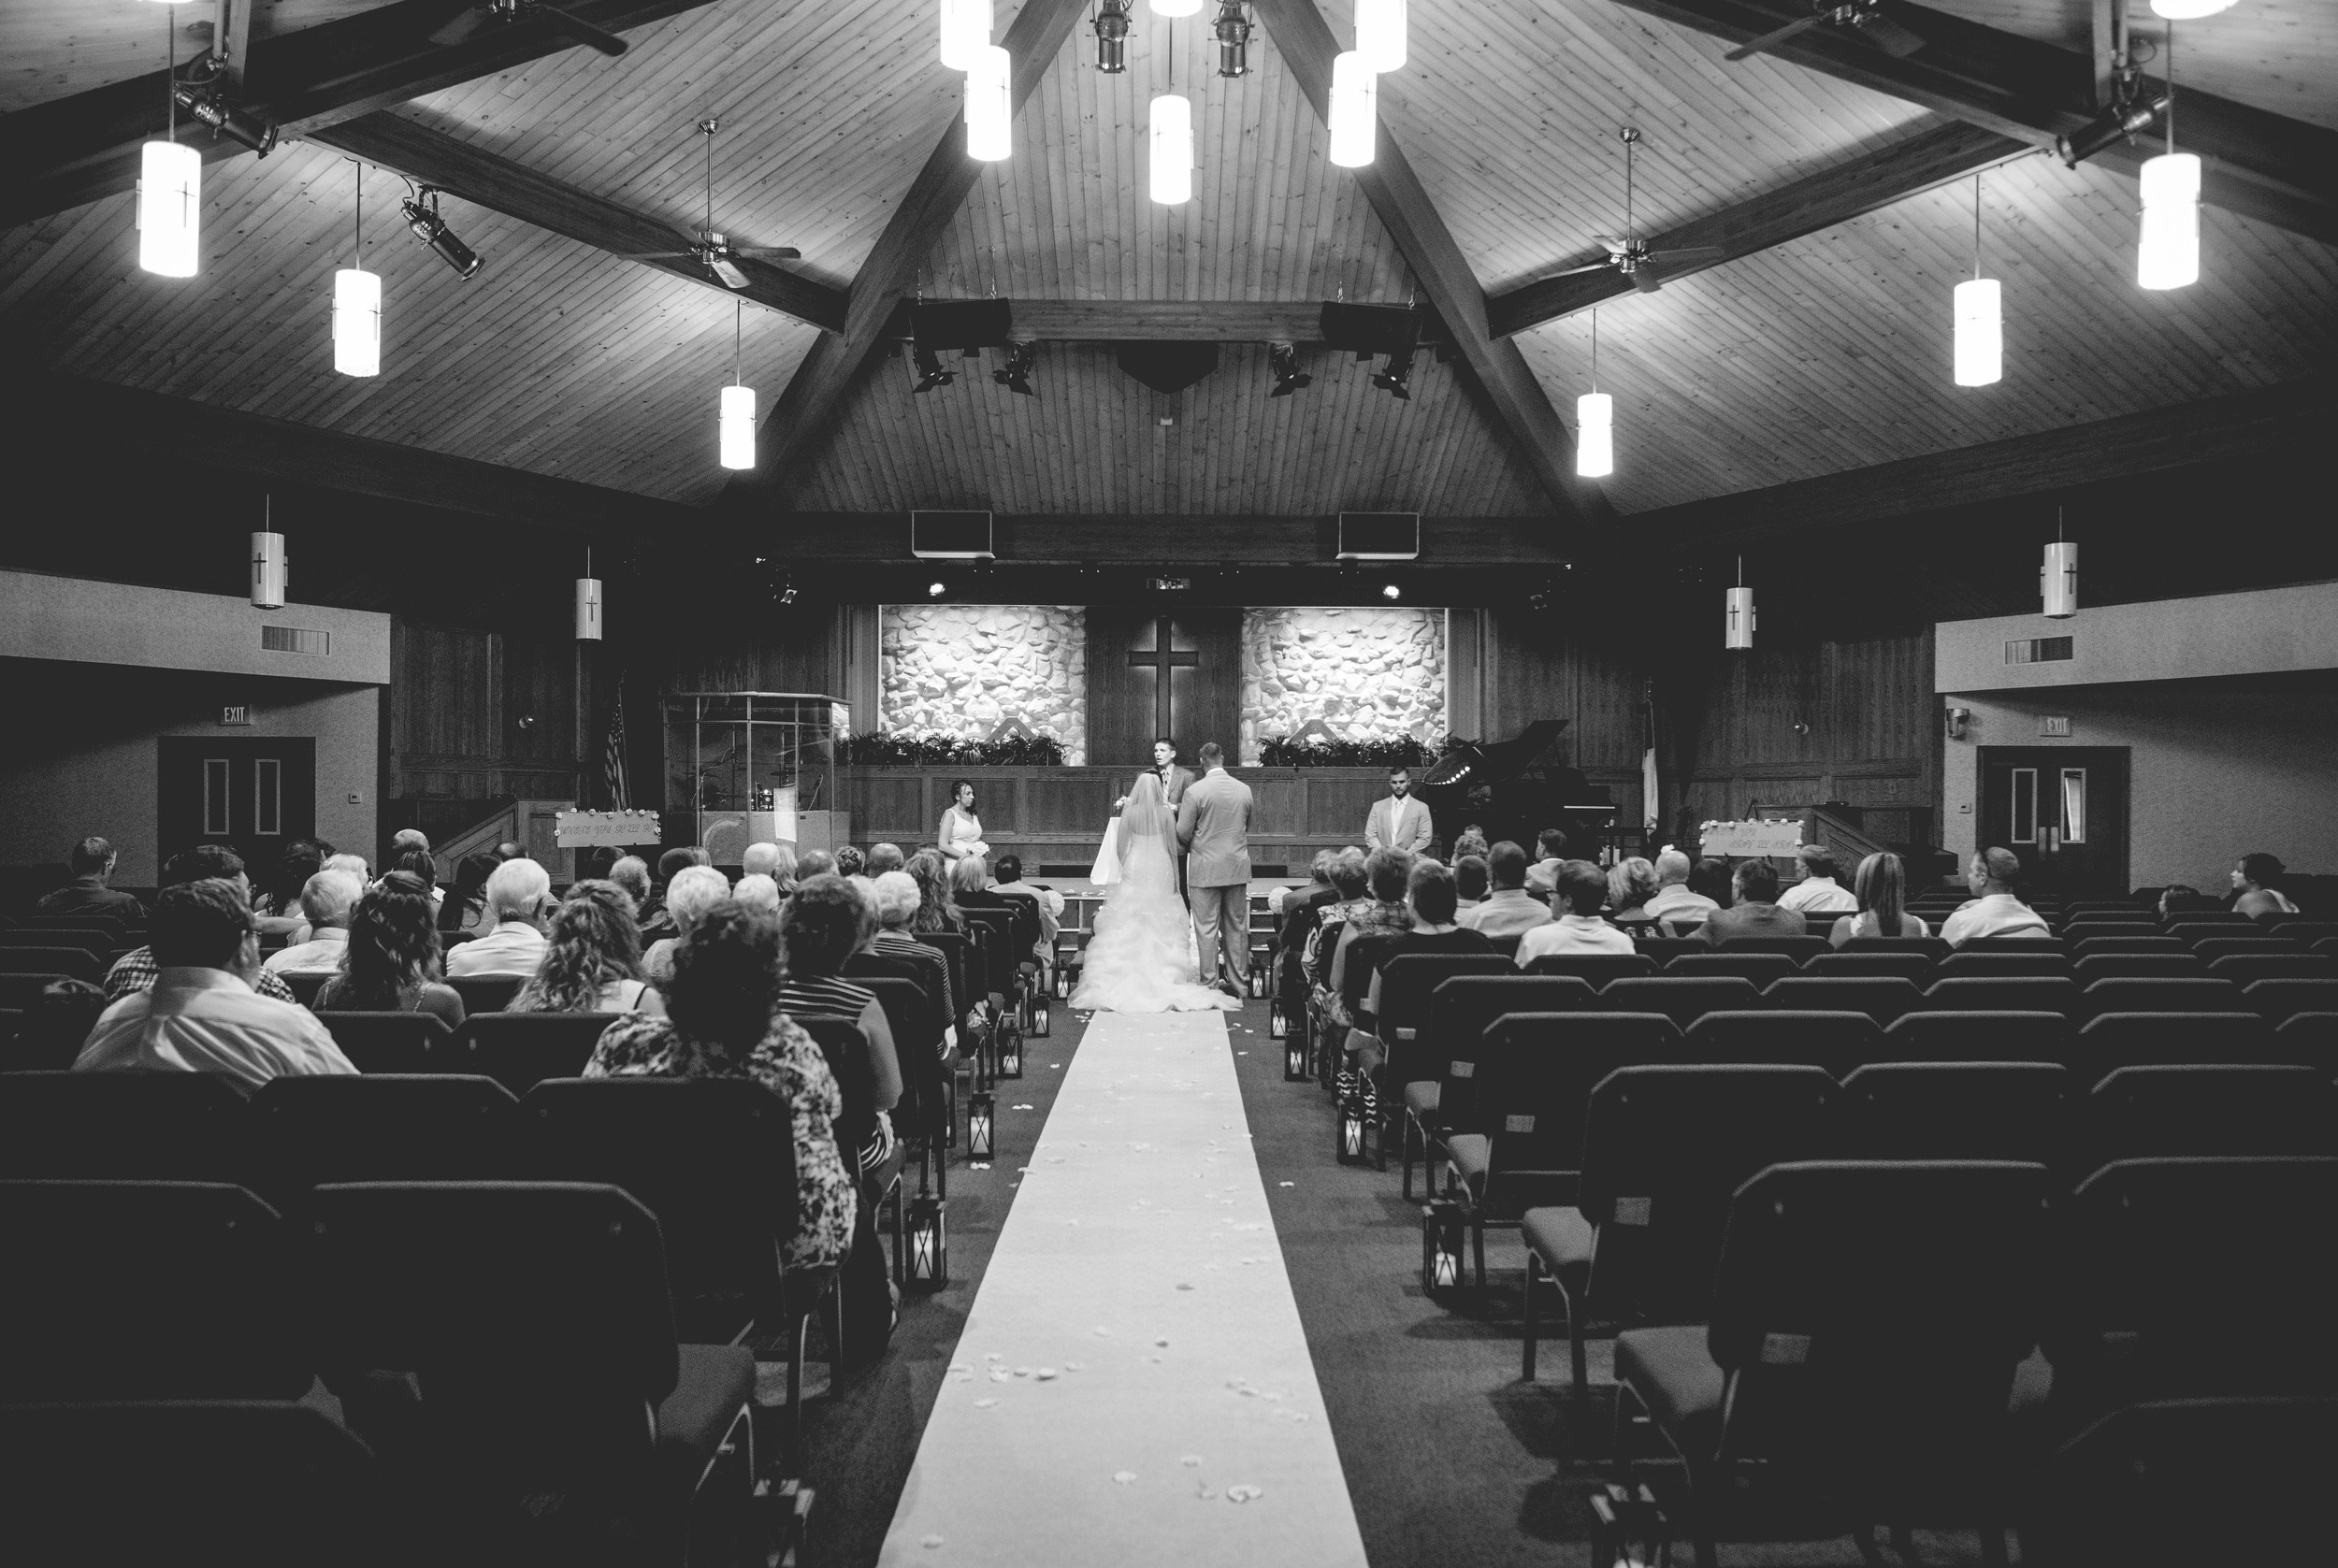 sarasutterphotography_wedding_alexandbrooke_2015-417.jpg